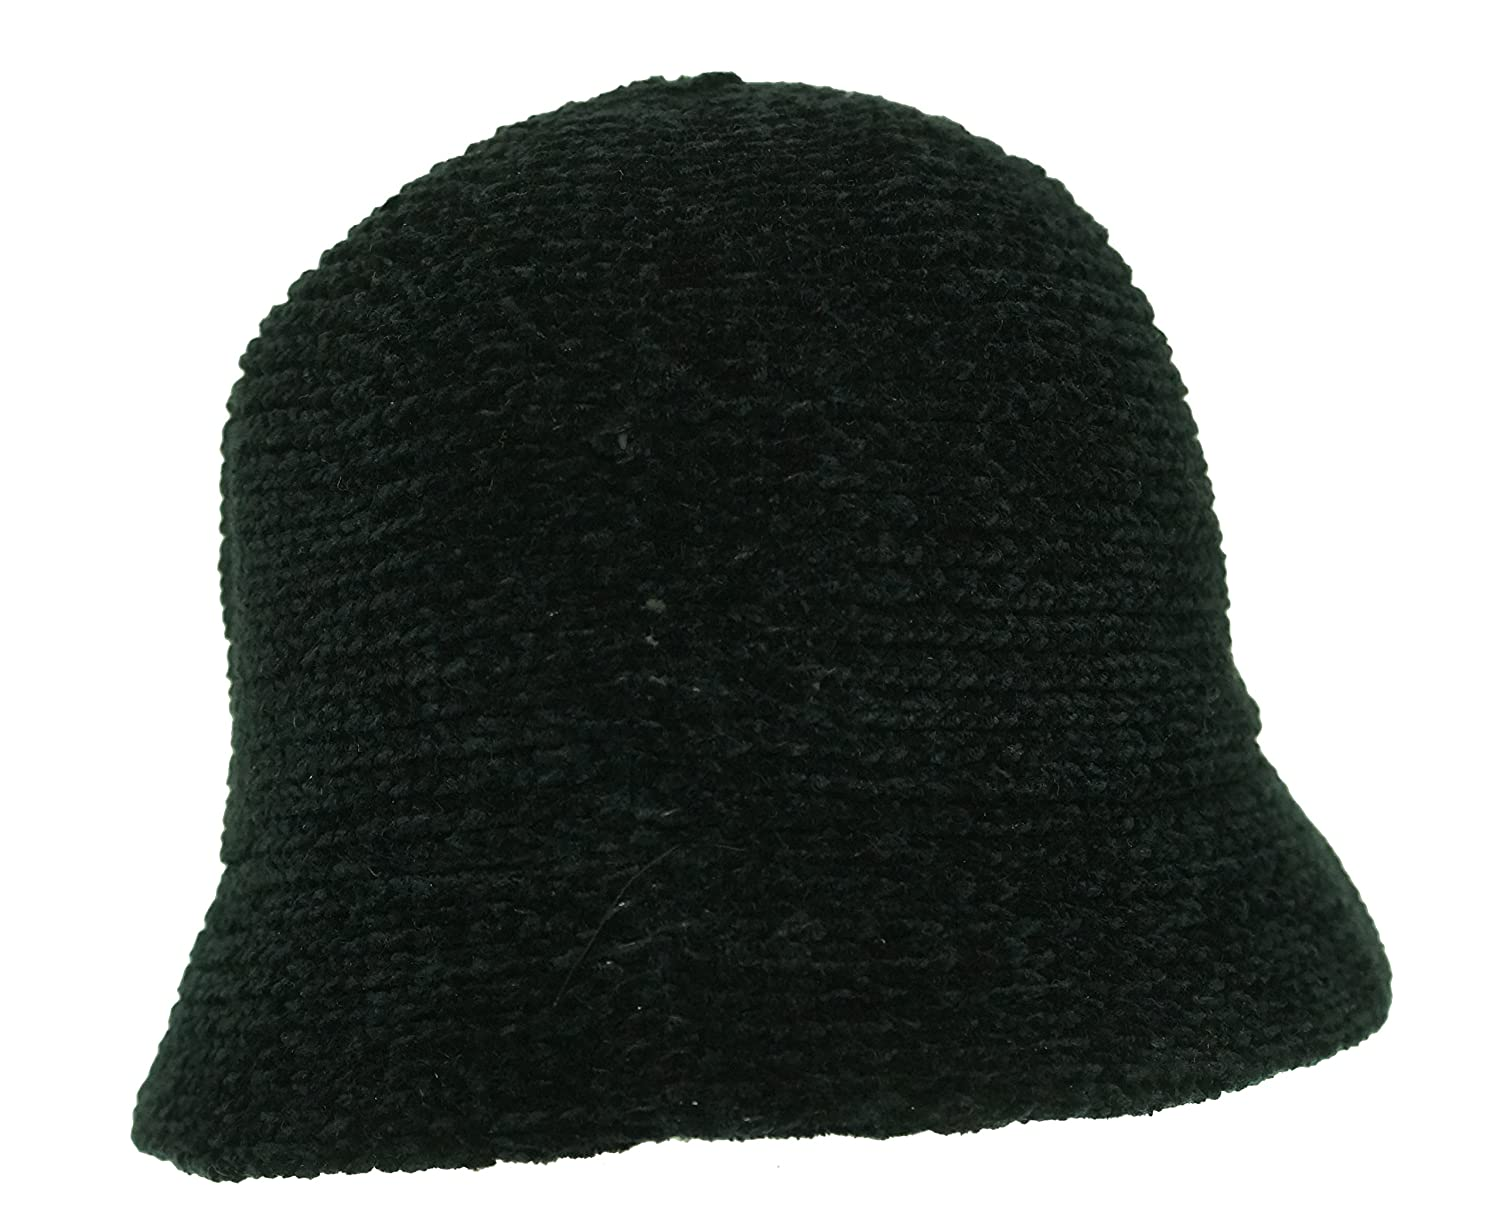 b64372ae6f7 August Hat Womens Chenille Crochet Cloche Hat Black O S at Amazon Women s  Clothing store